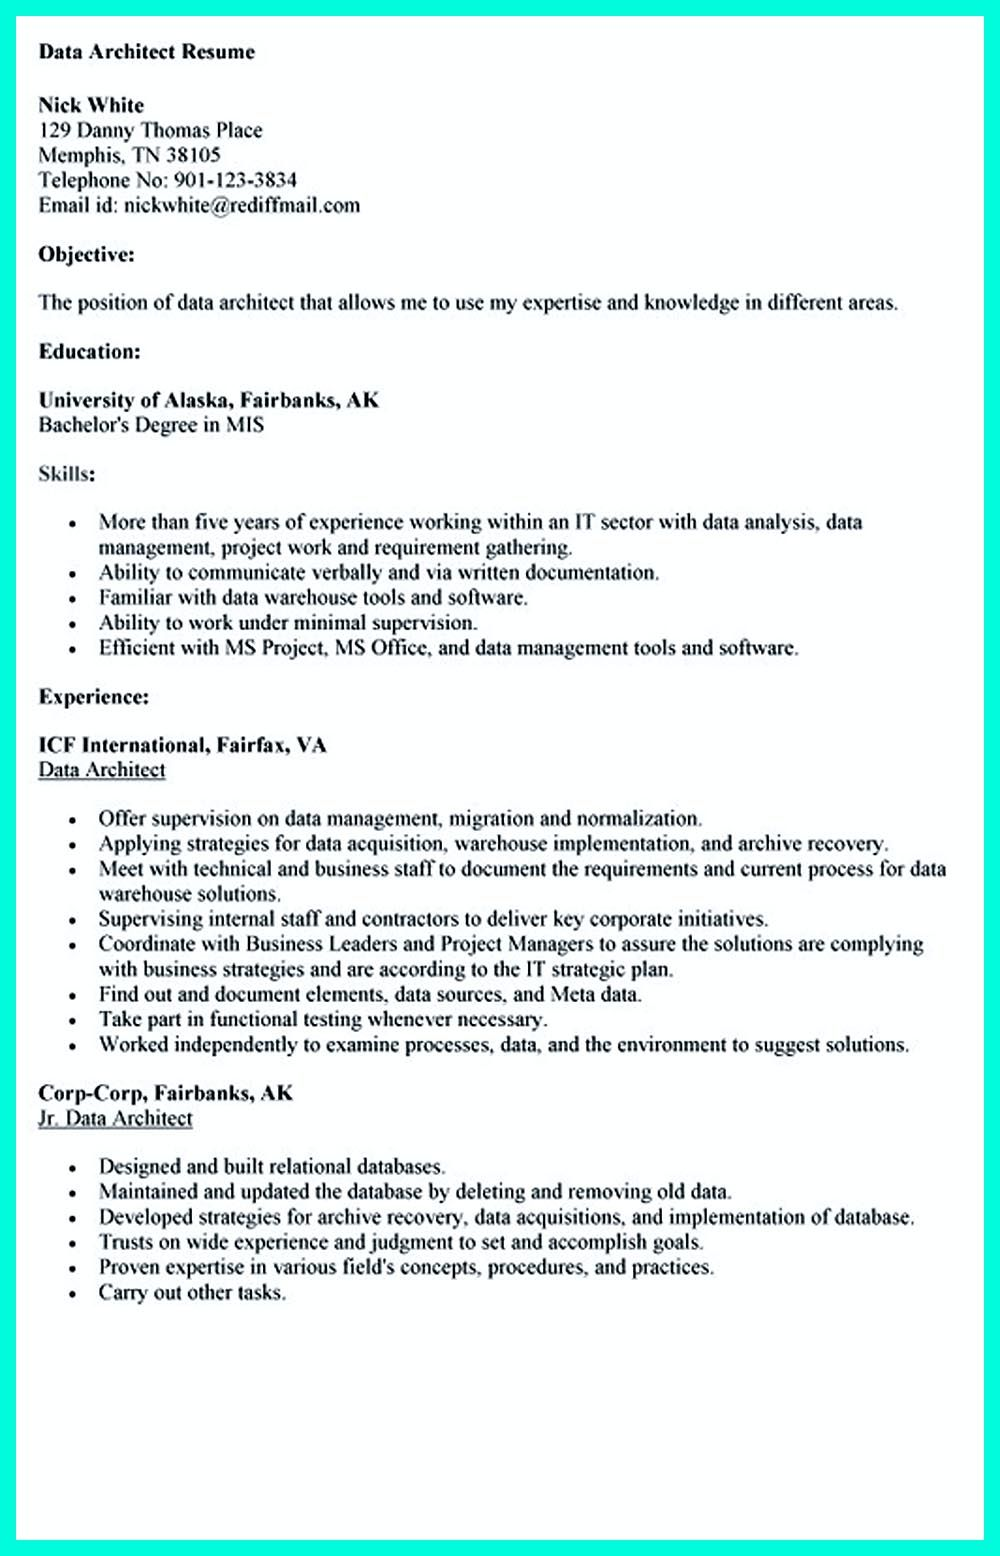 Skills On A Resume Examples In The Data Architect Resume One Must Describe The Professional